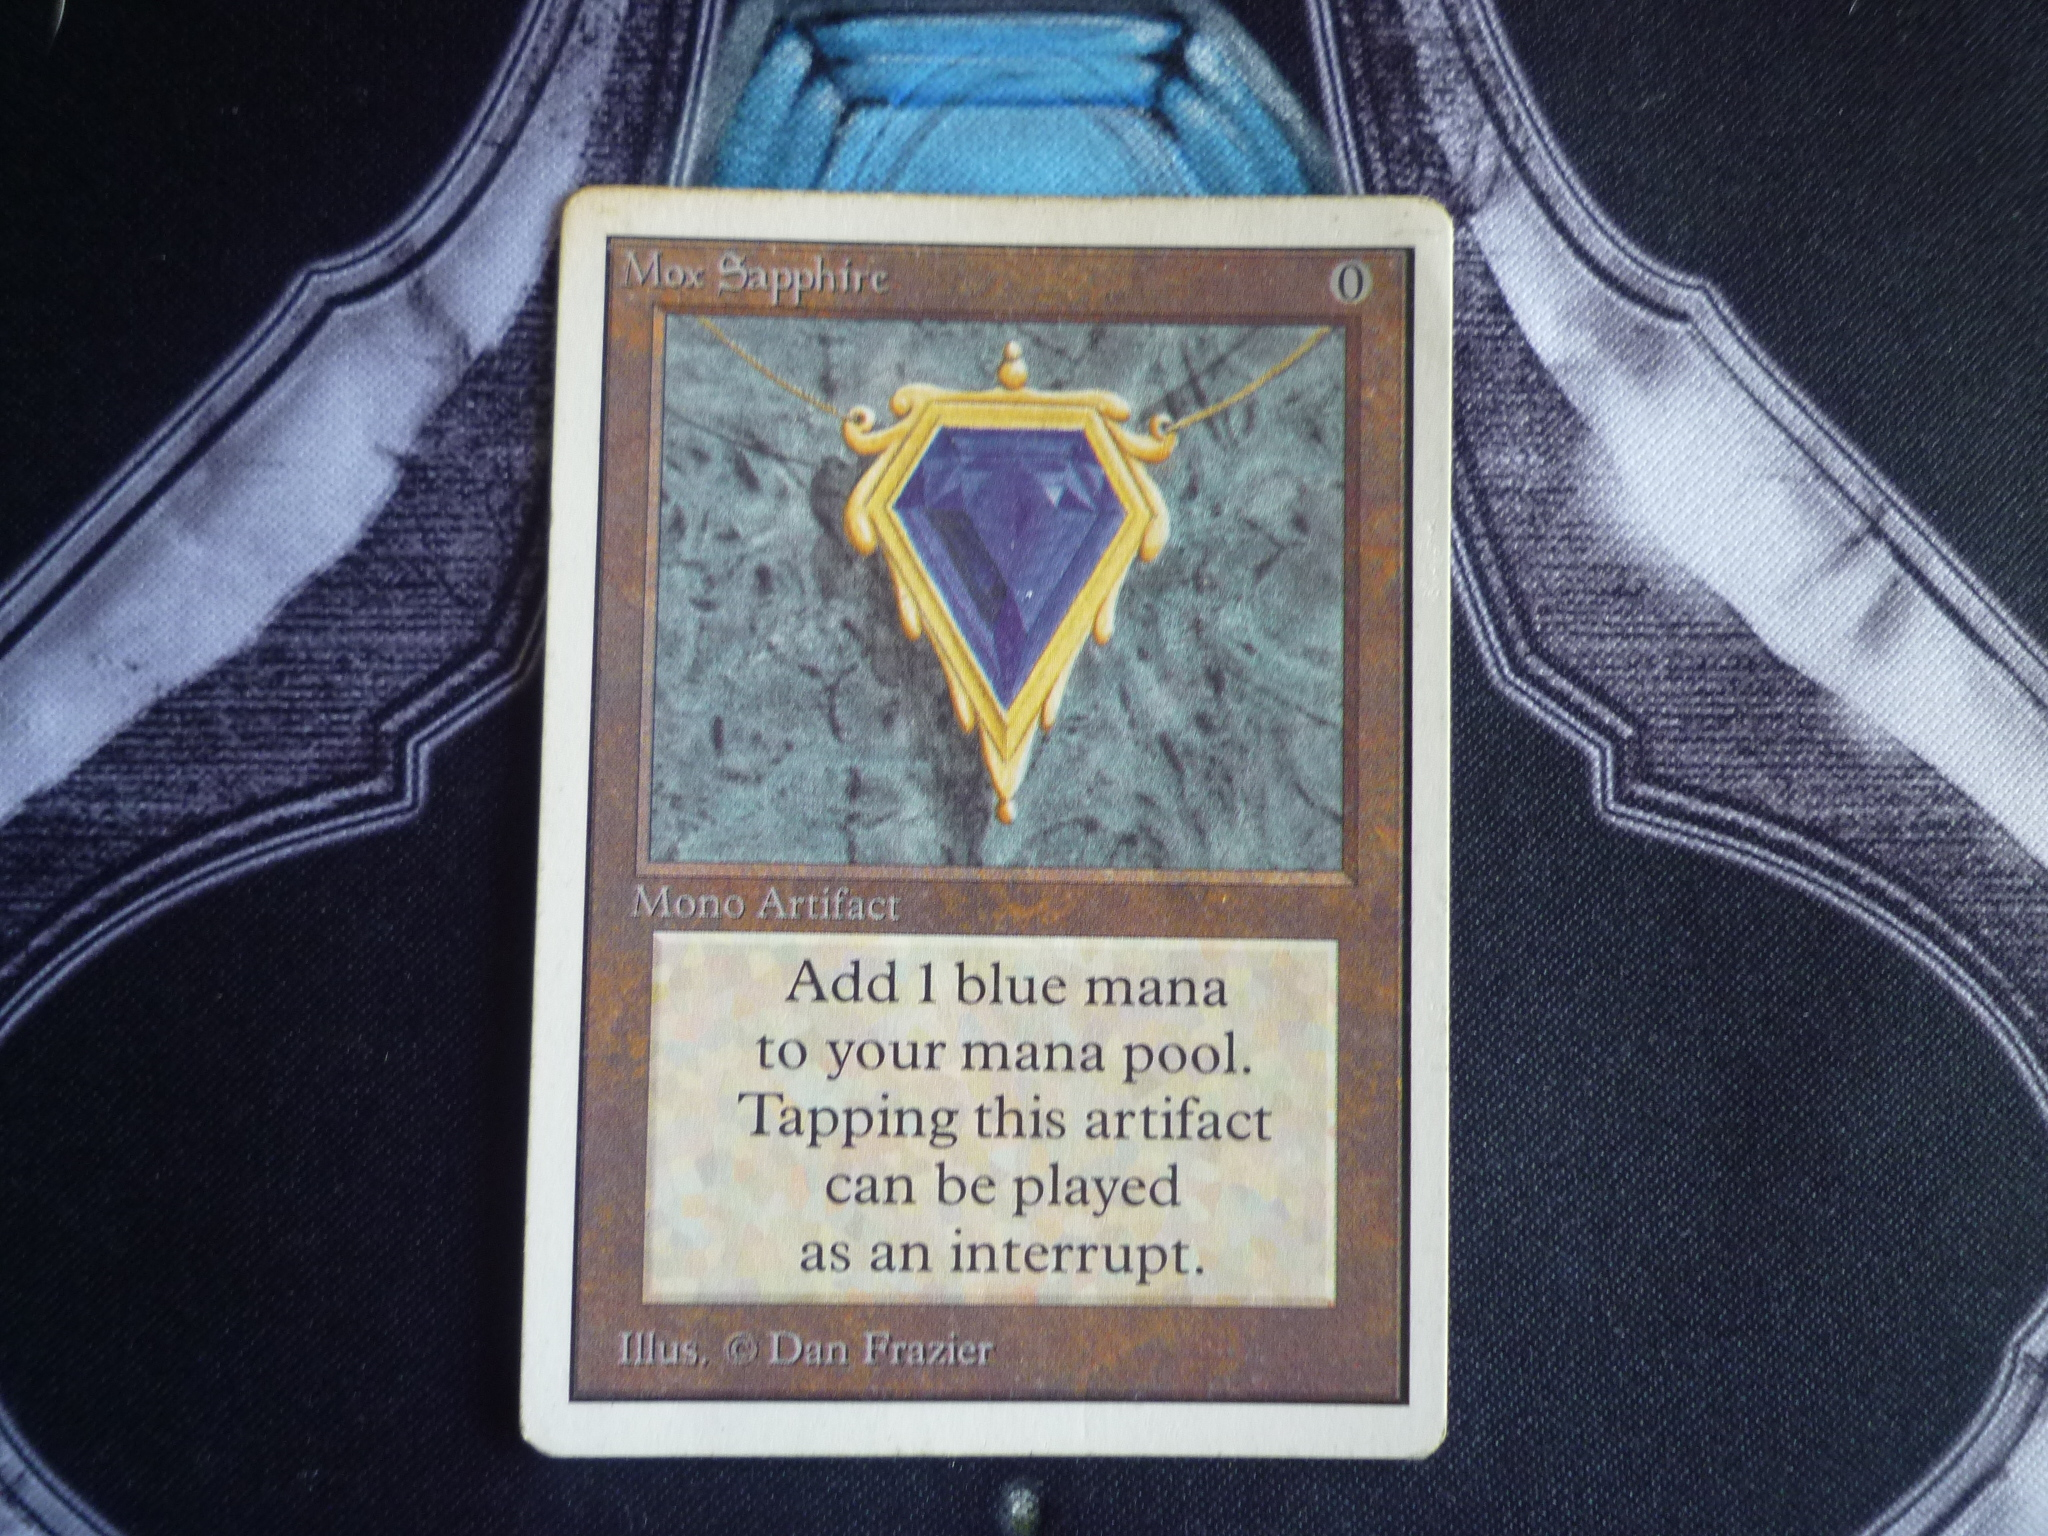 Mox sapphire front